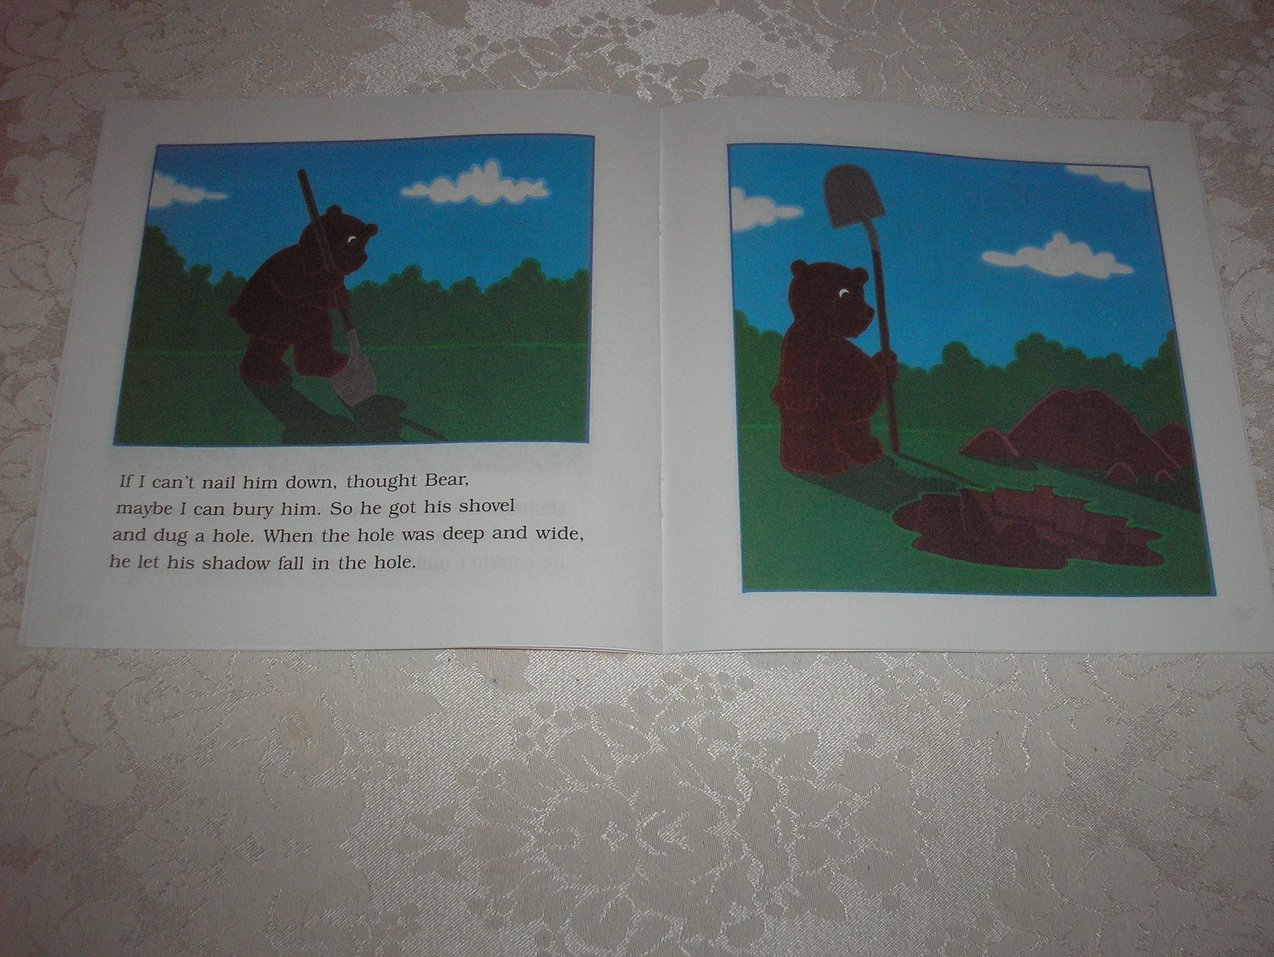 Image 3 of Bear Shadow Frank Asch Brand New Softcover